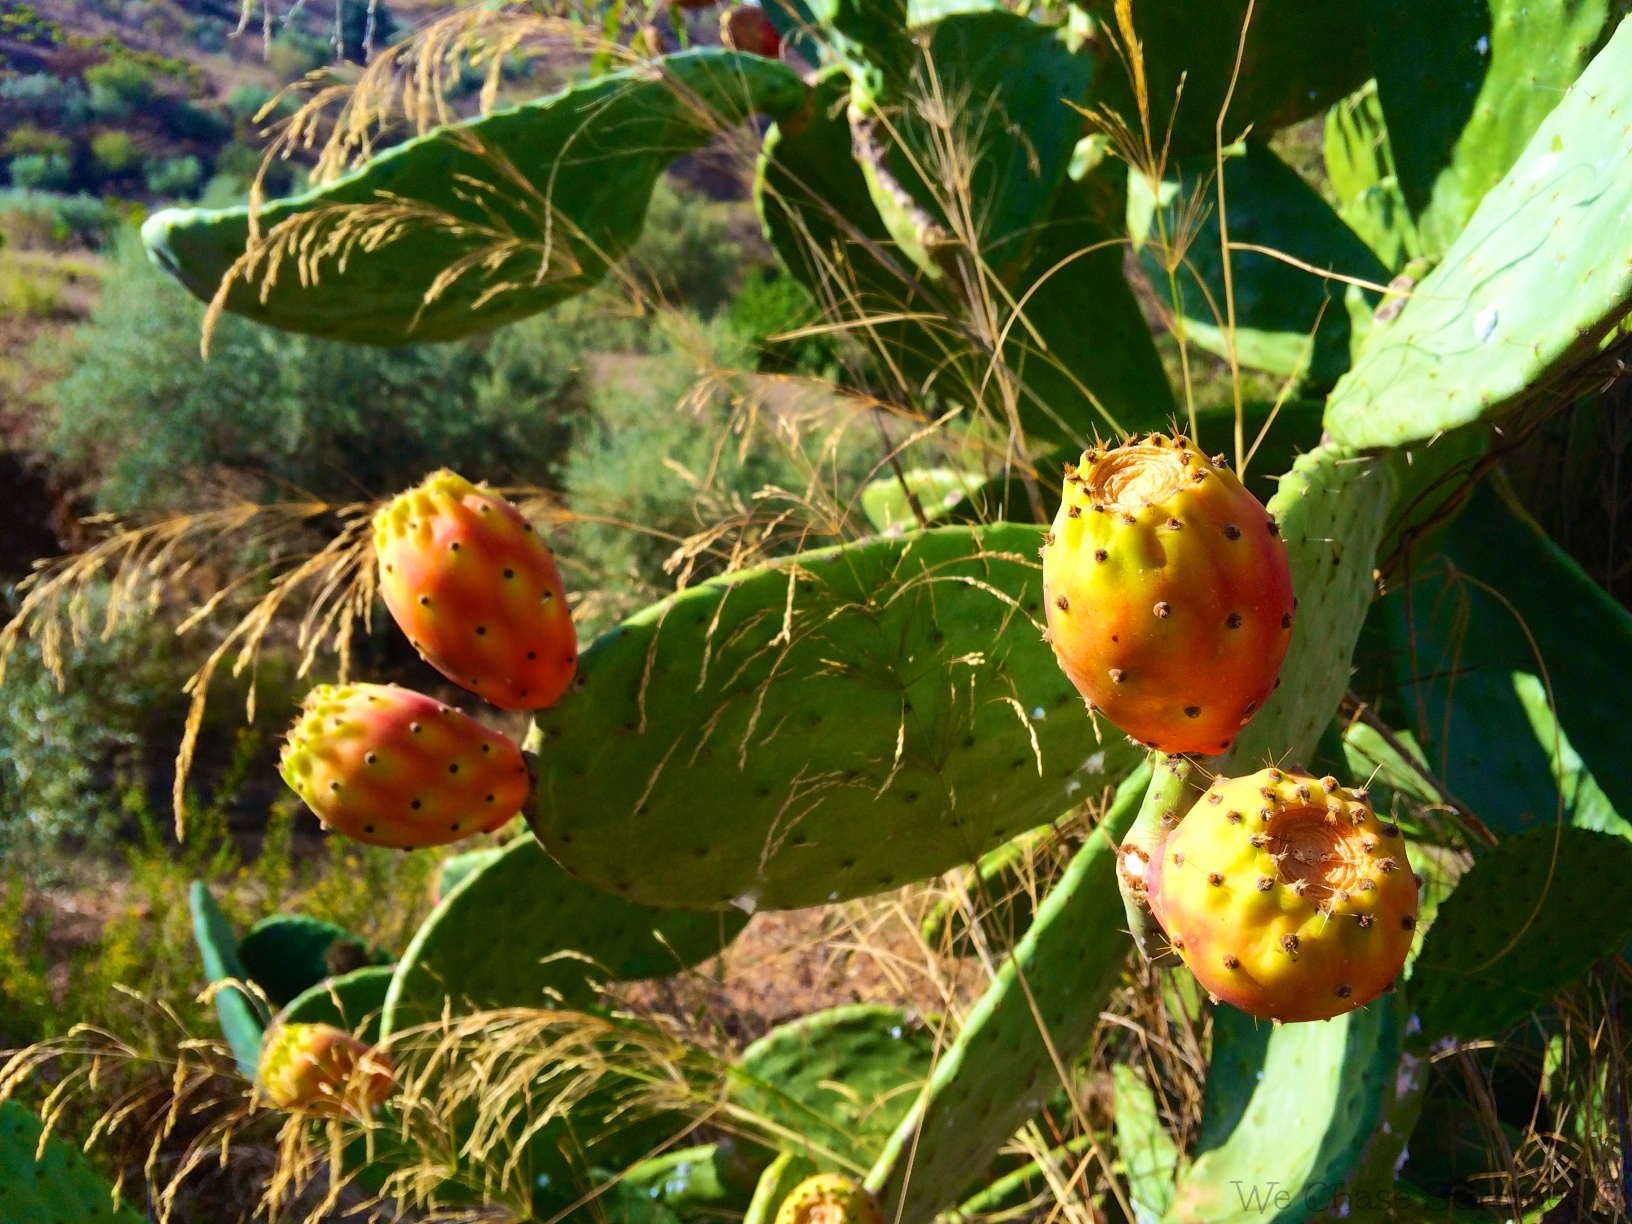 Prickly fruits